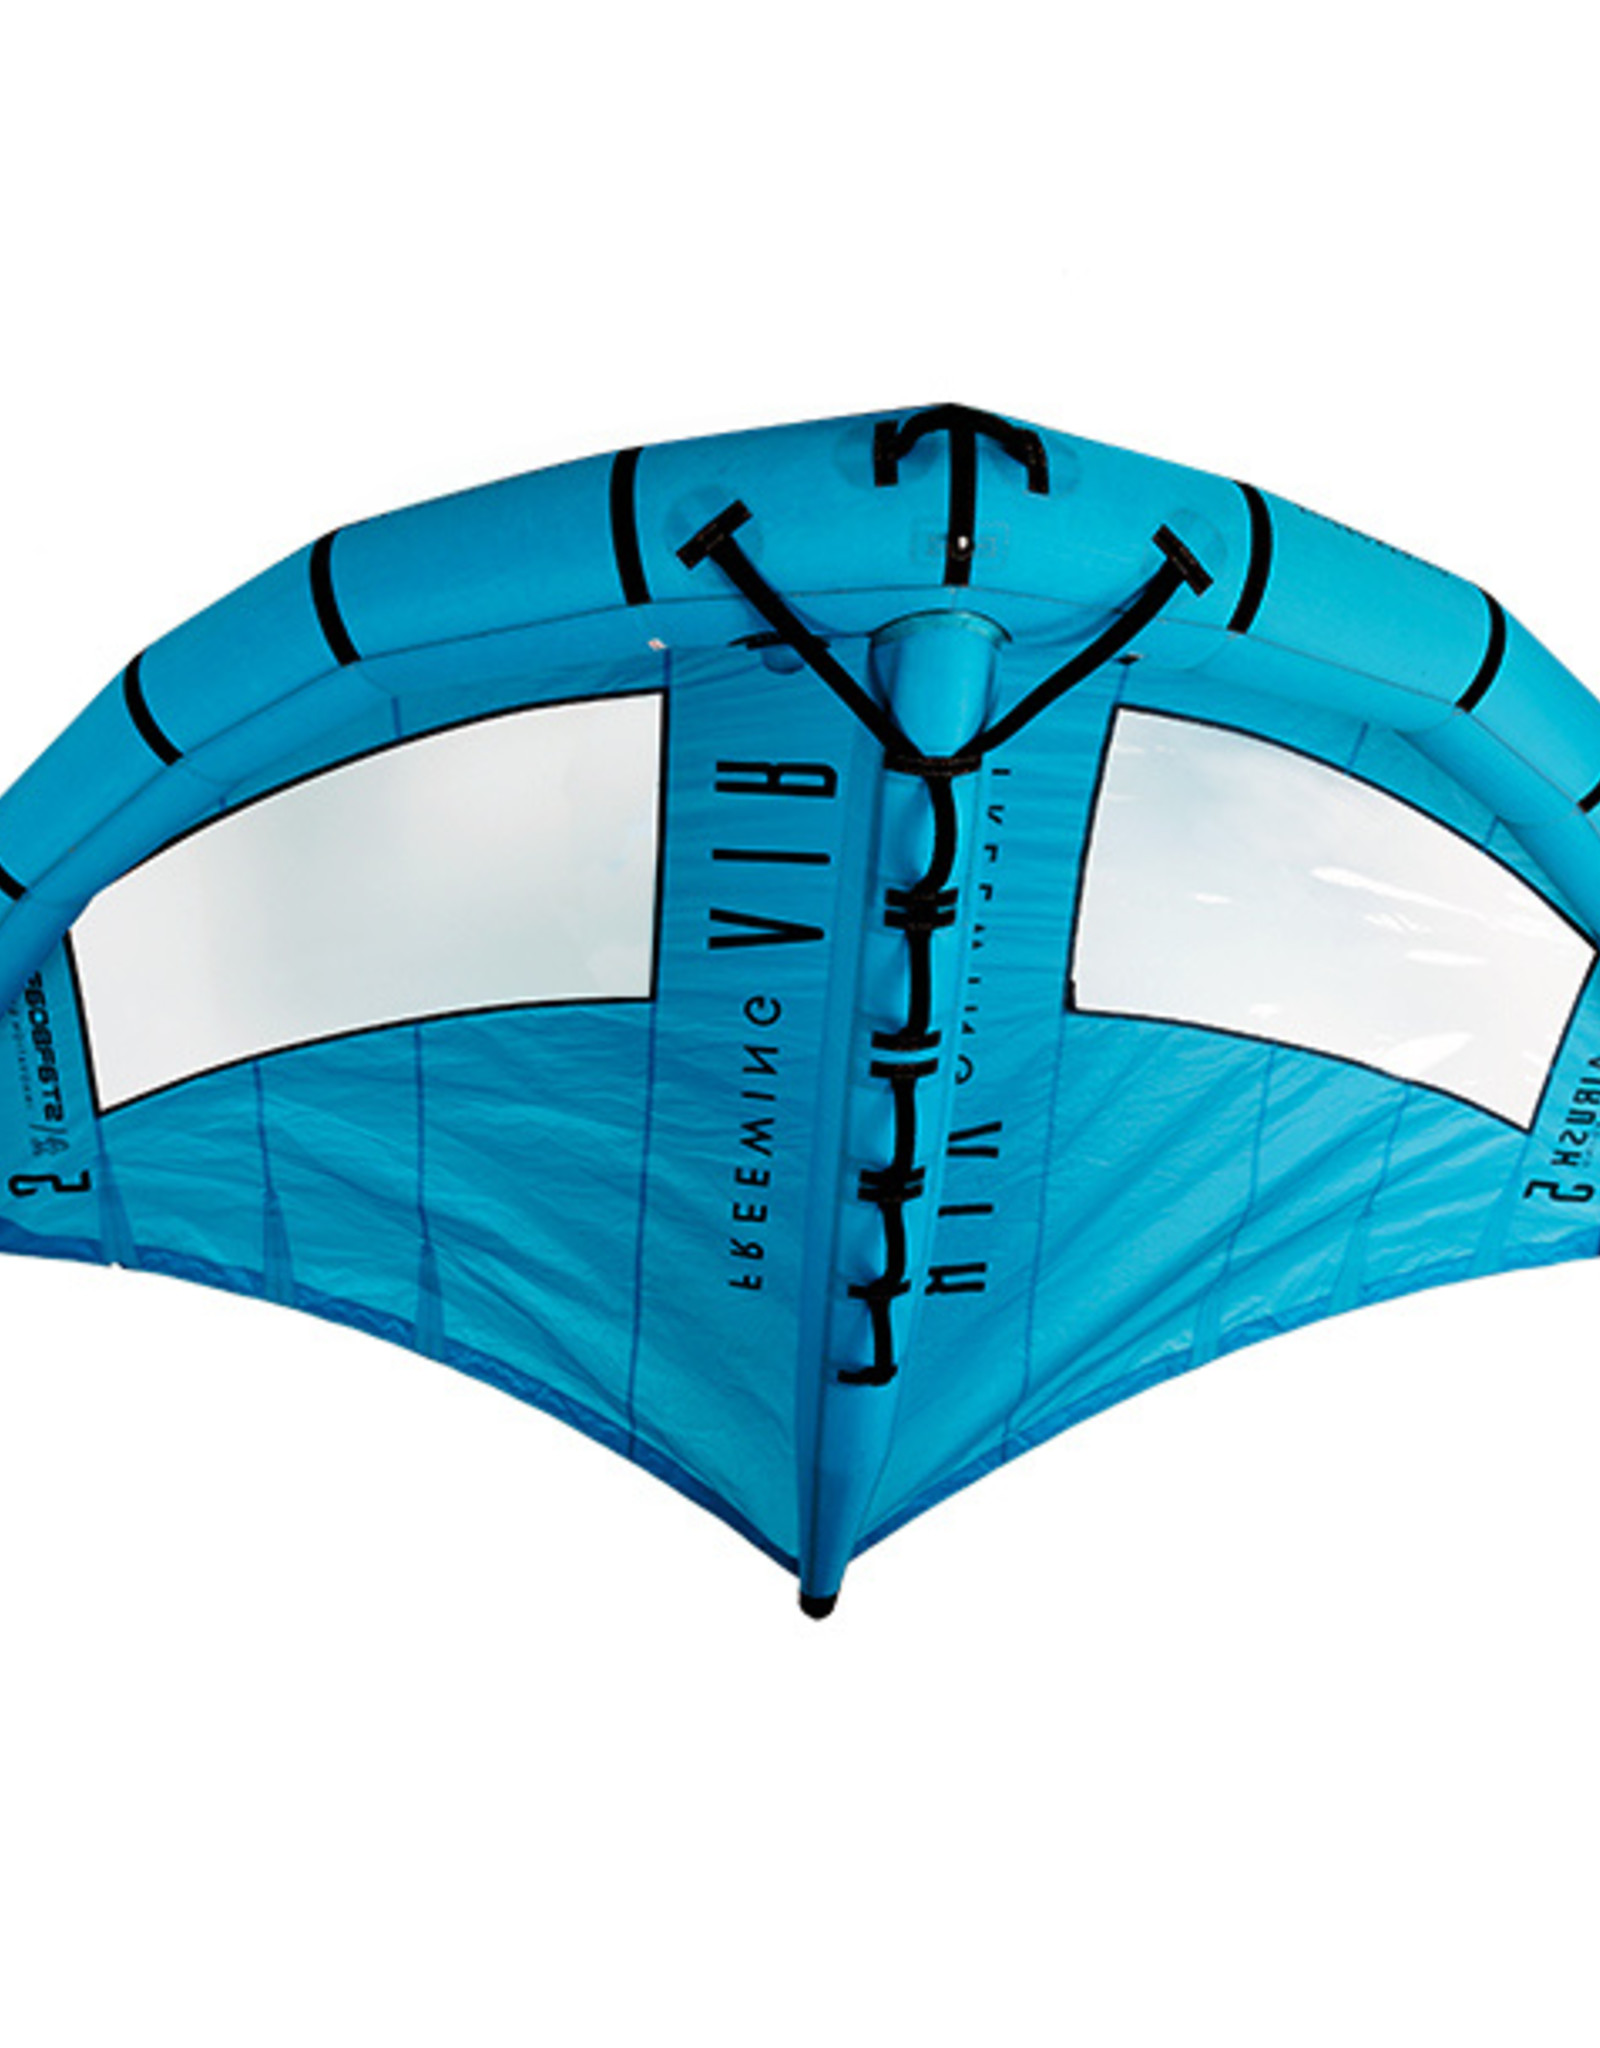 Airush Starboard Airush Freewing AIR 6m teal